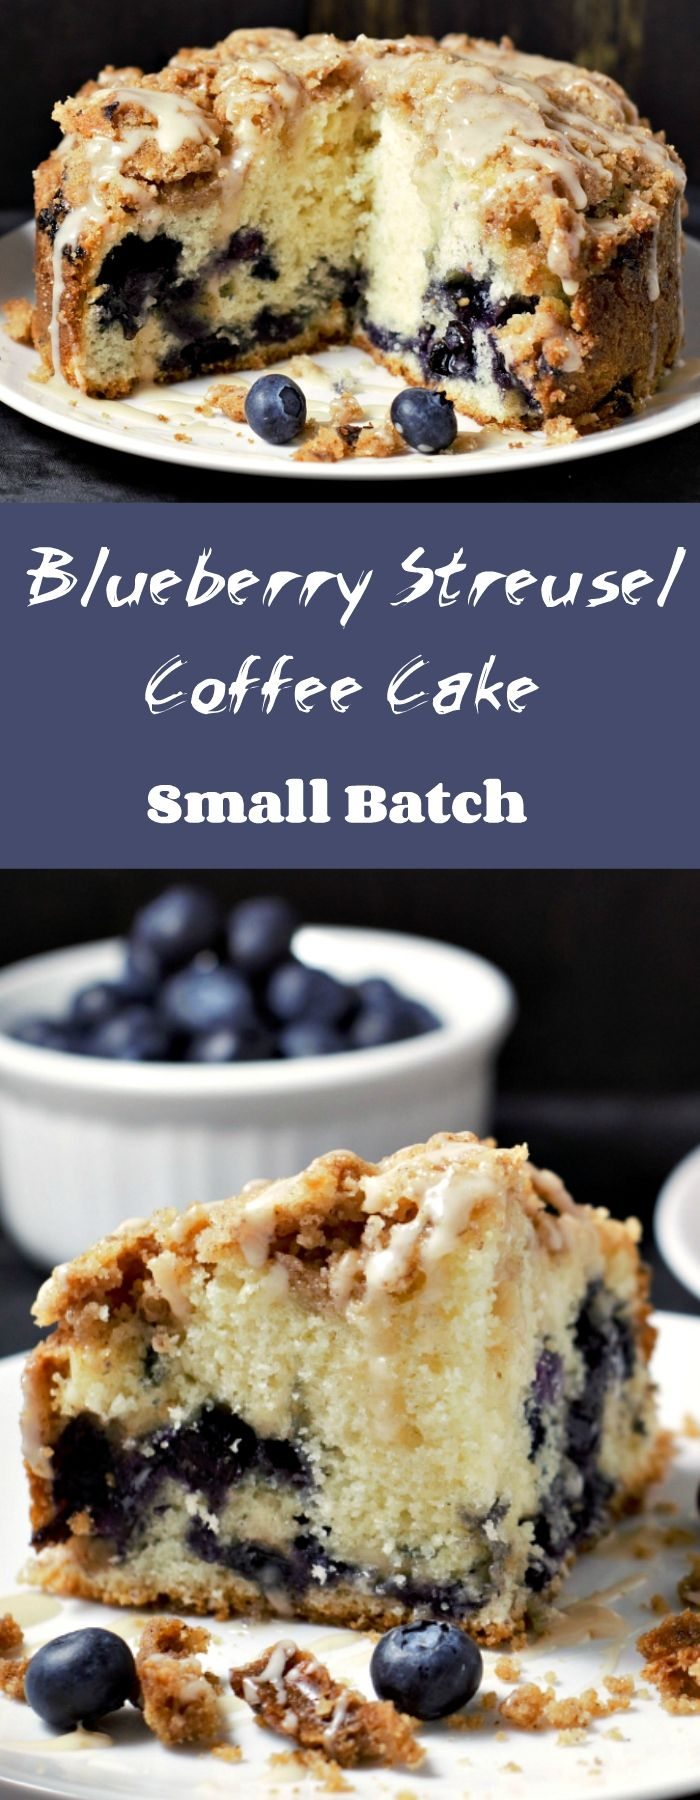 This Blueberry Streusel Coffee Cake is moist, fluffy and